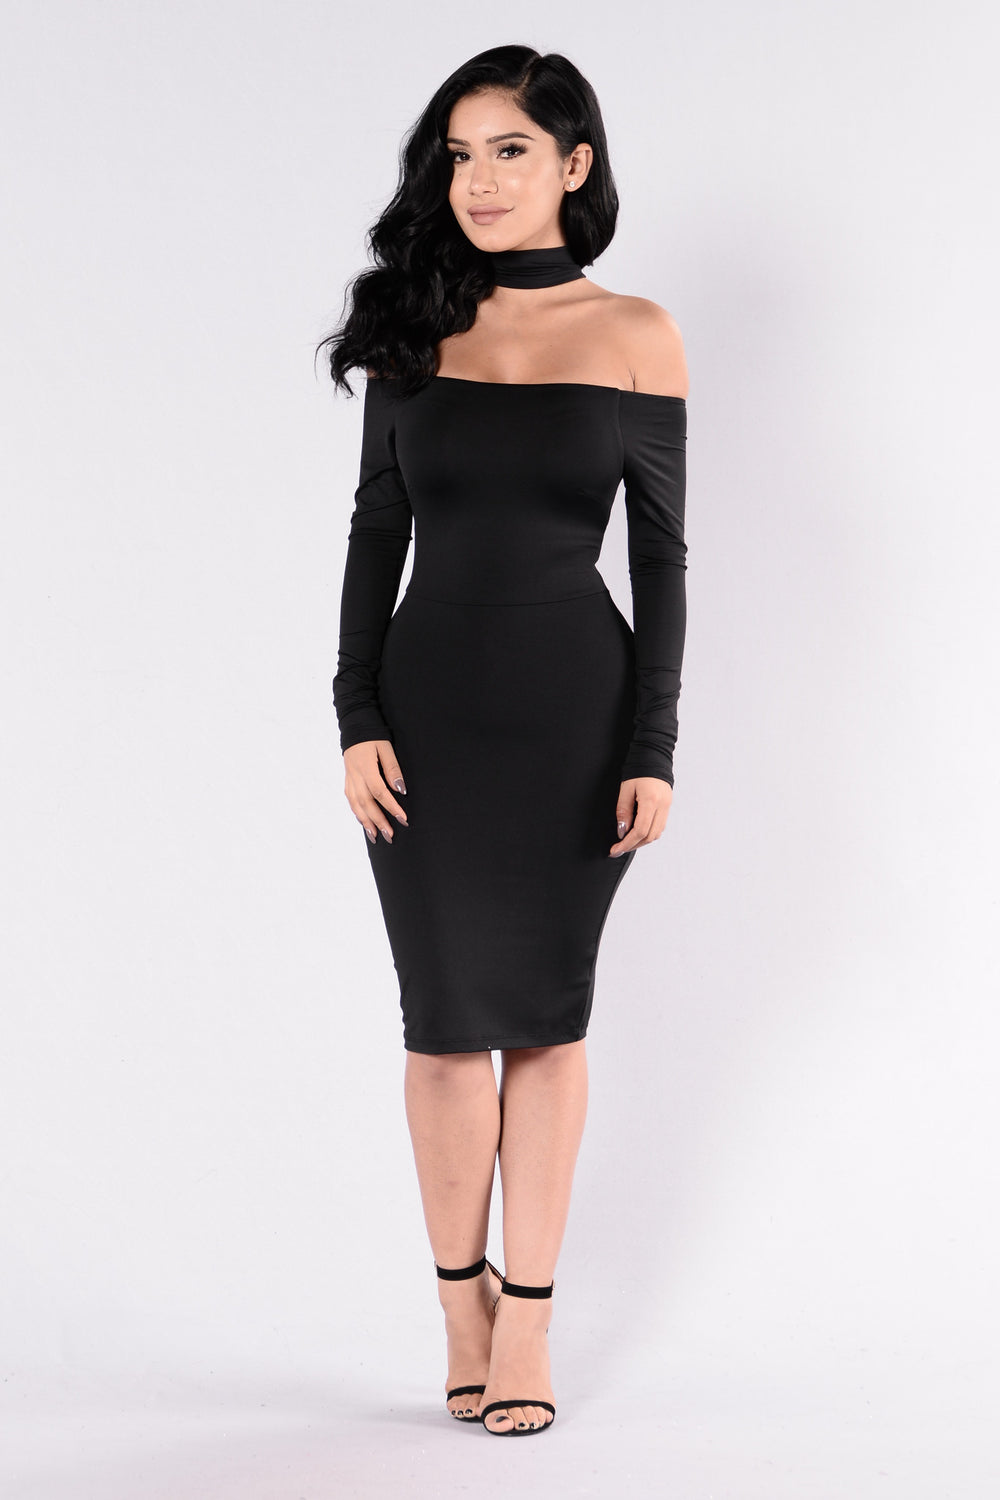 Get It Right Get It Tight Dress - Black